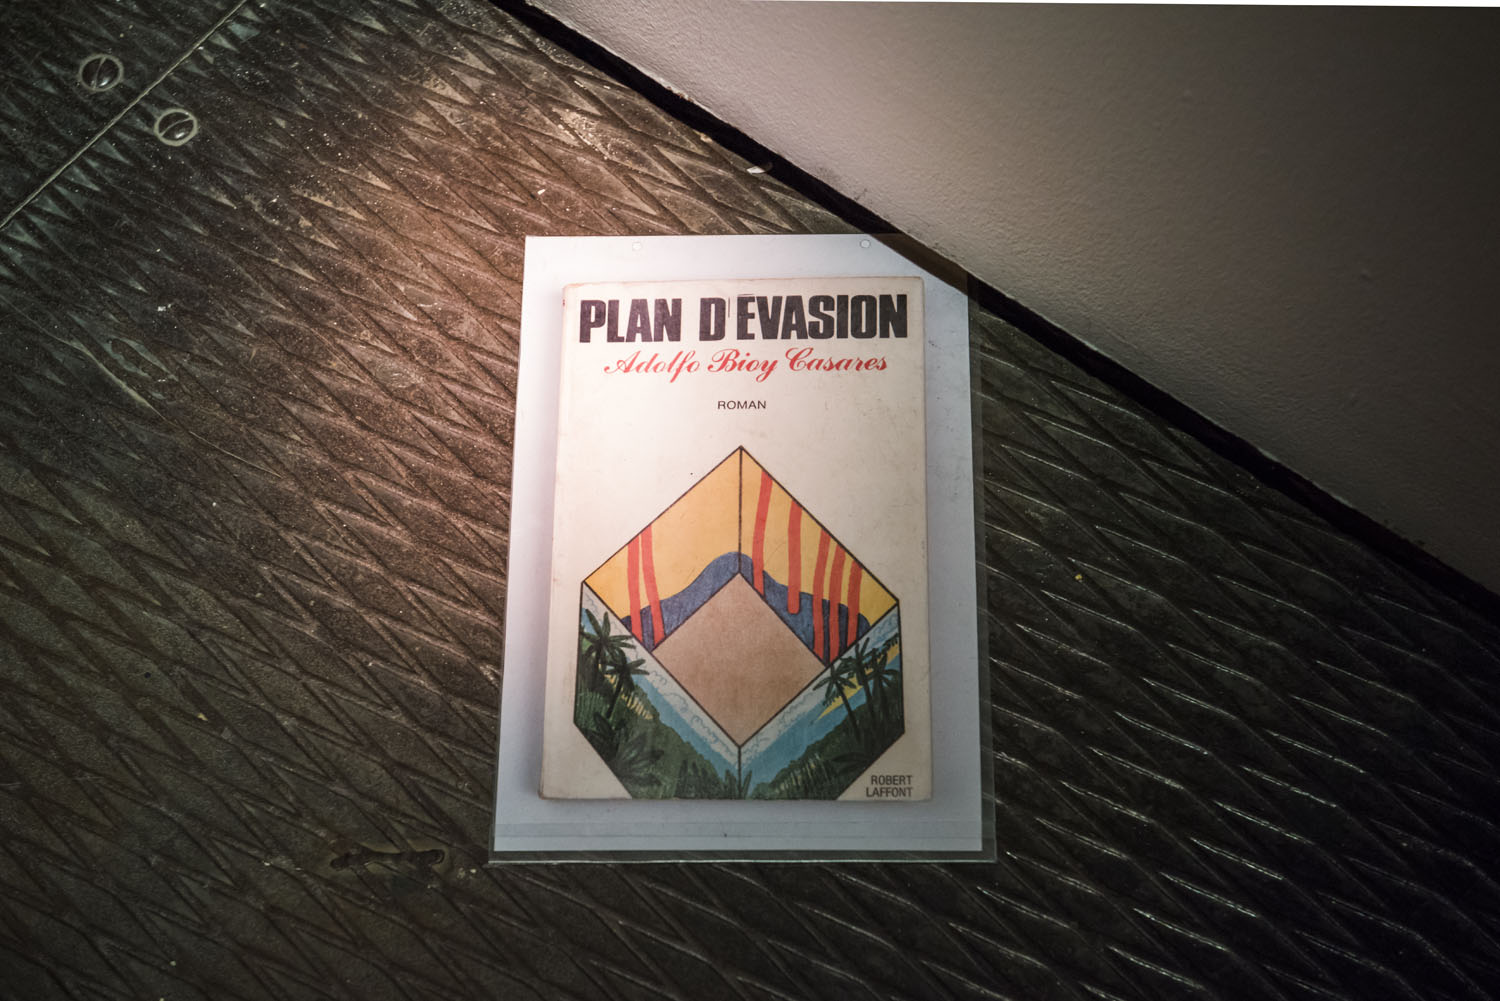 Collection Morel – Plan d'evasion, 2016, credit photo Michael Meniane pour Collection Morel, 2016 – (2)